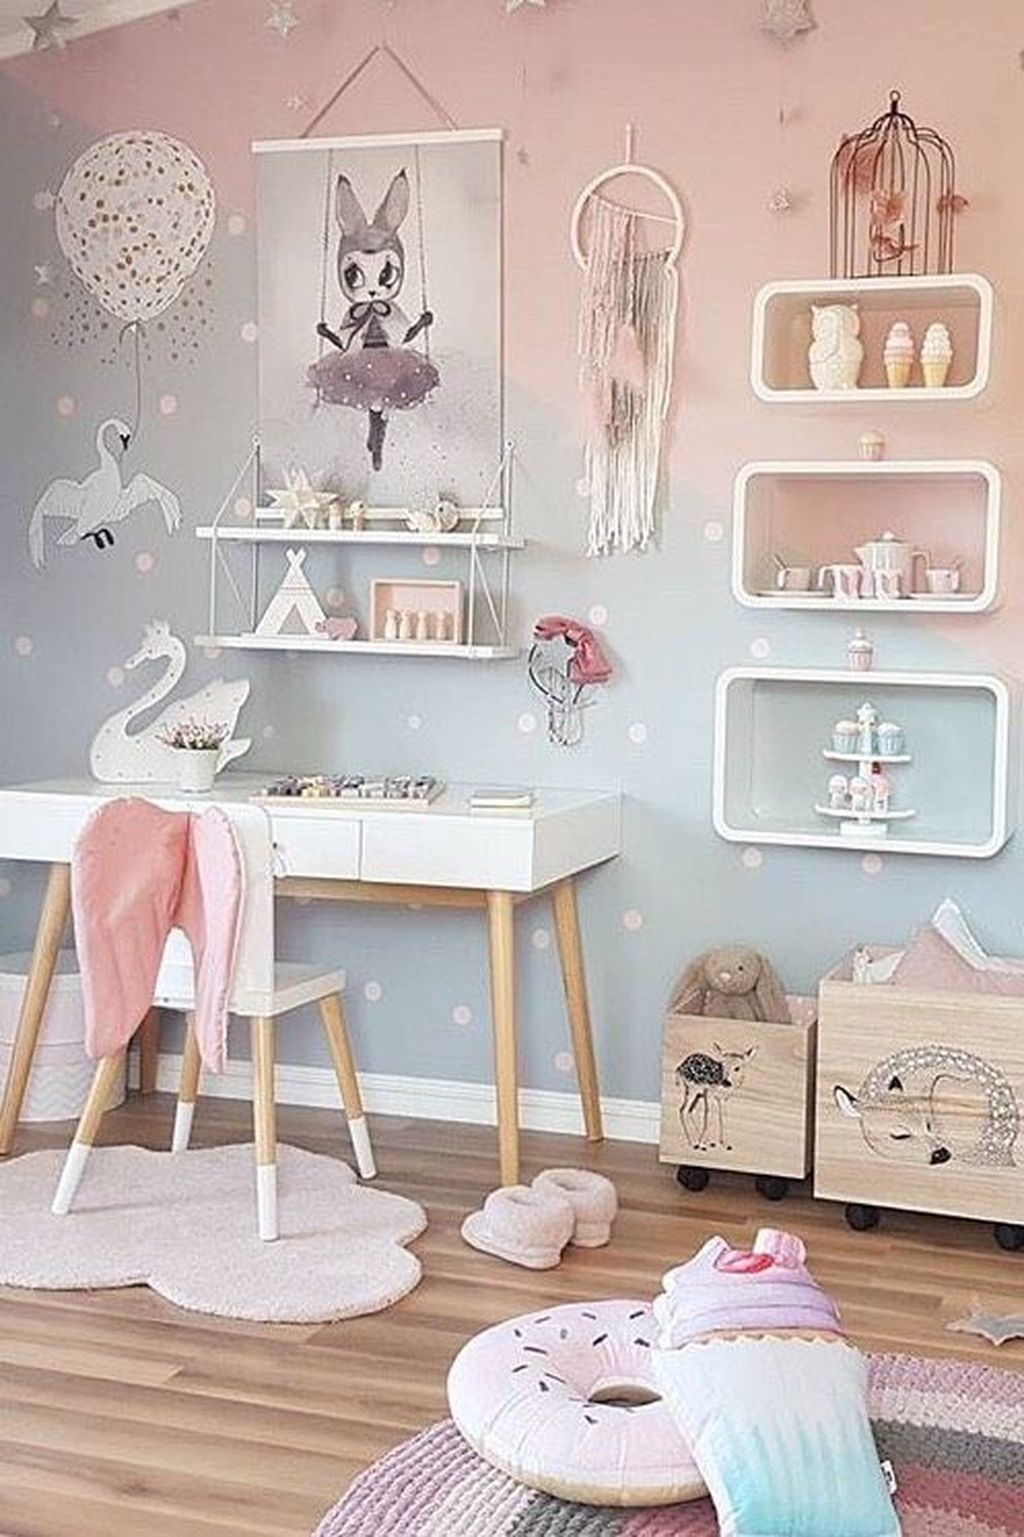 Awesome 50 Cozy Scandinavian Kids Rooms Designs Ideas More At Https Homishome Com 2018 12 17 50 Scandinavian Kids Rooms Kid Room Decor Kids Bedroom Designs